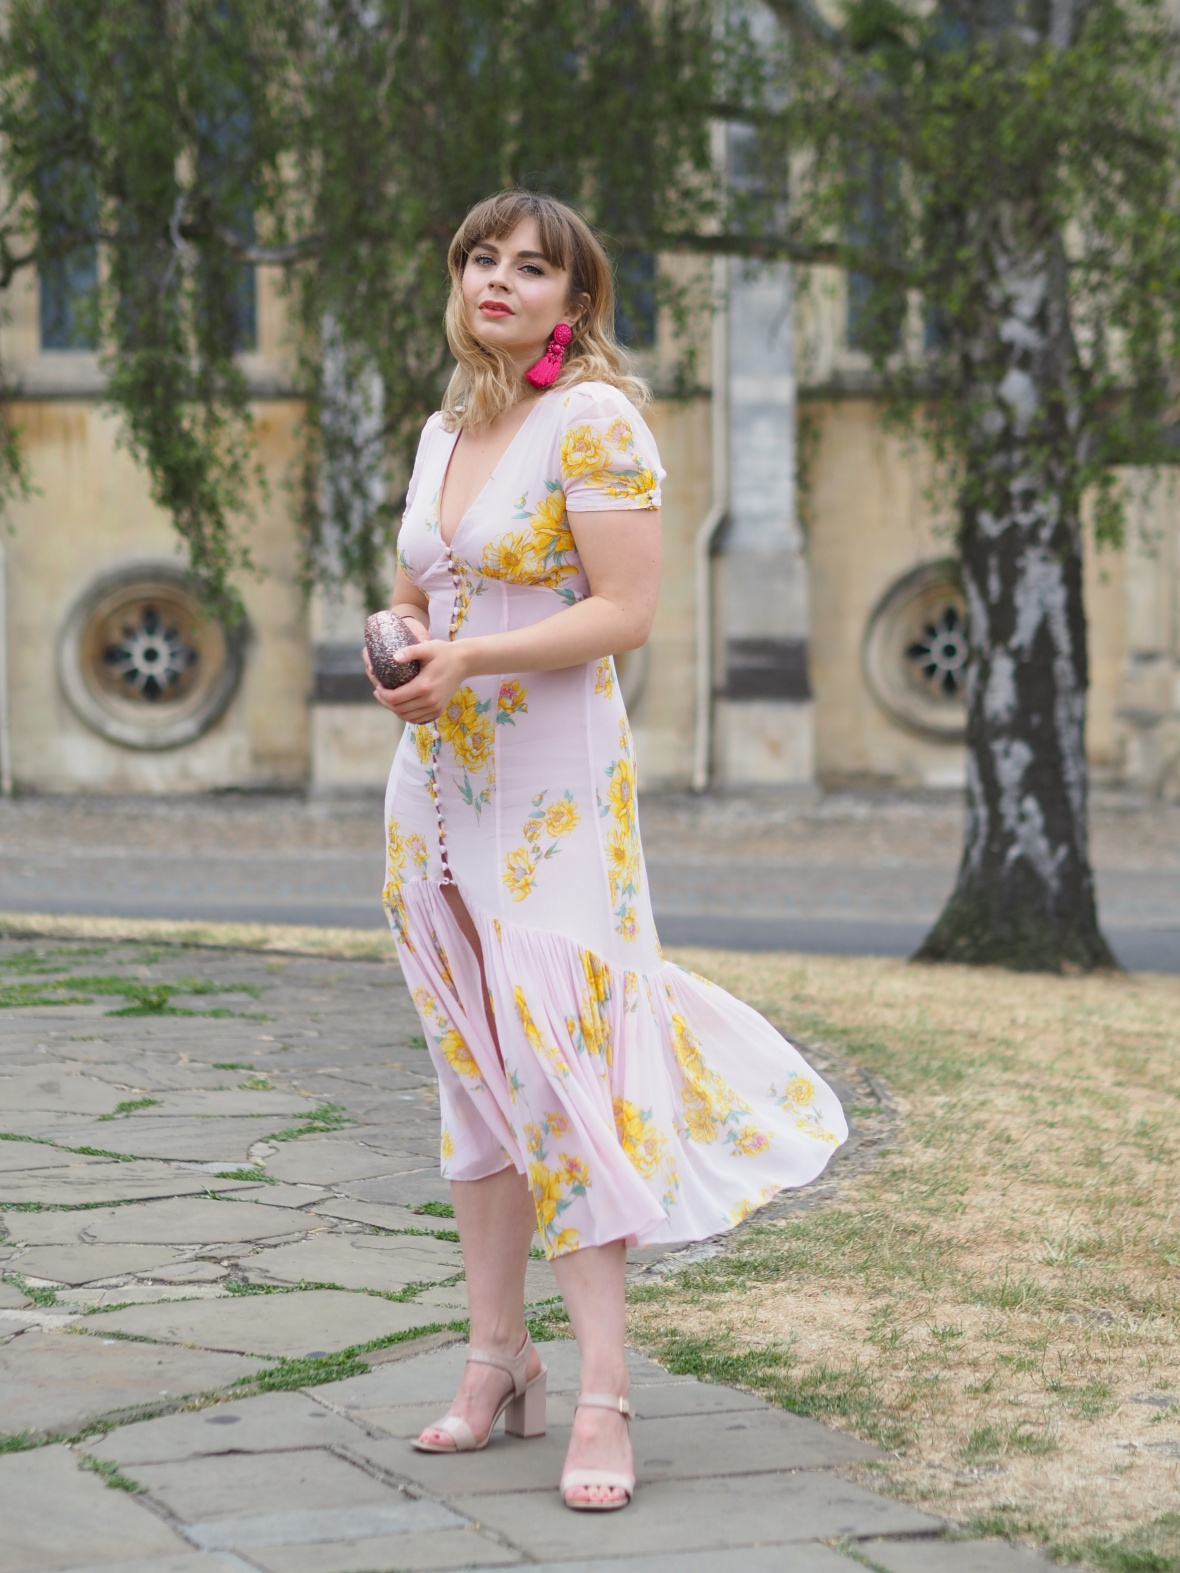 Summer occasionwear outfit ideas